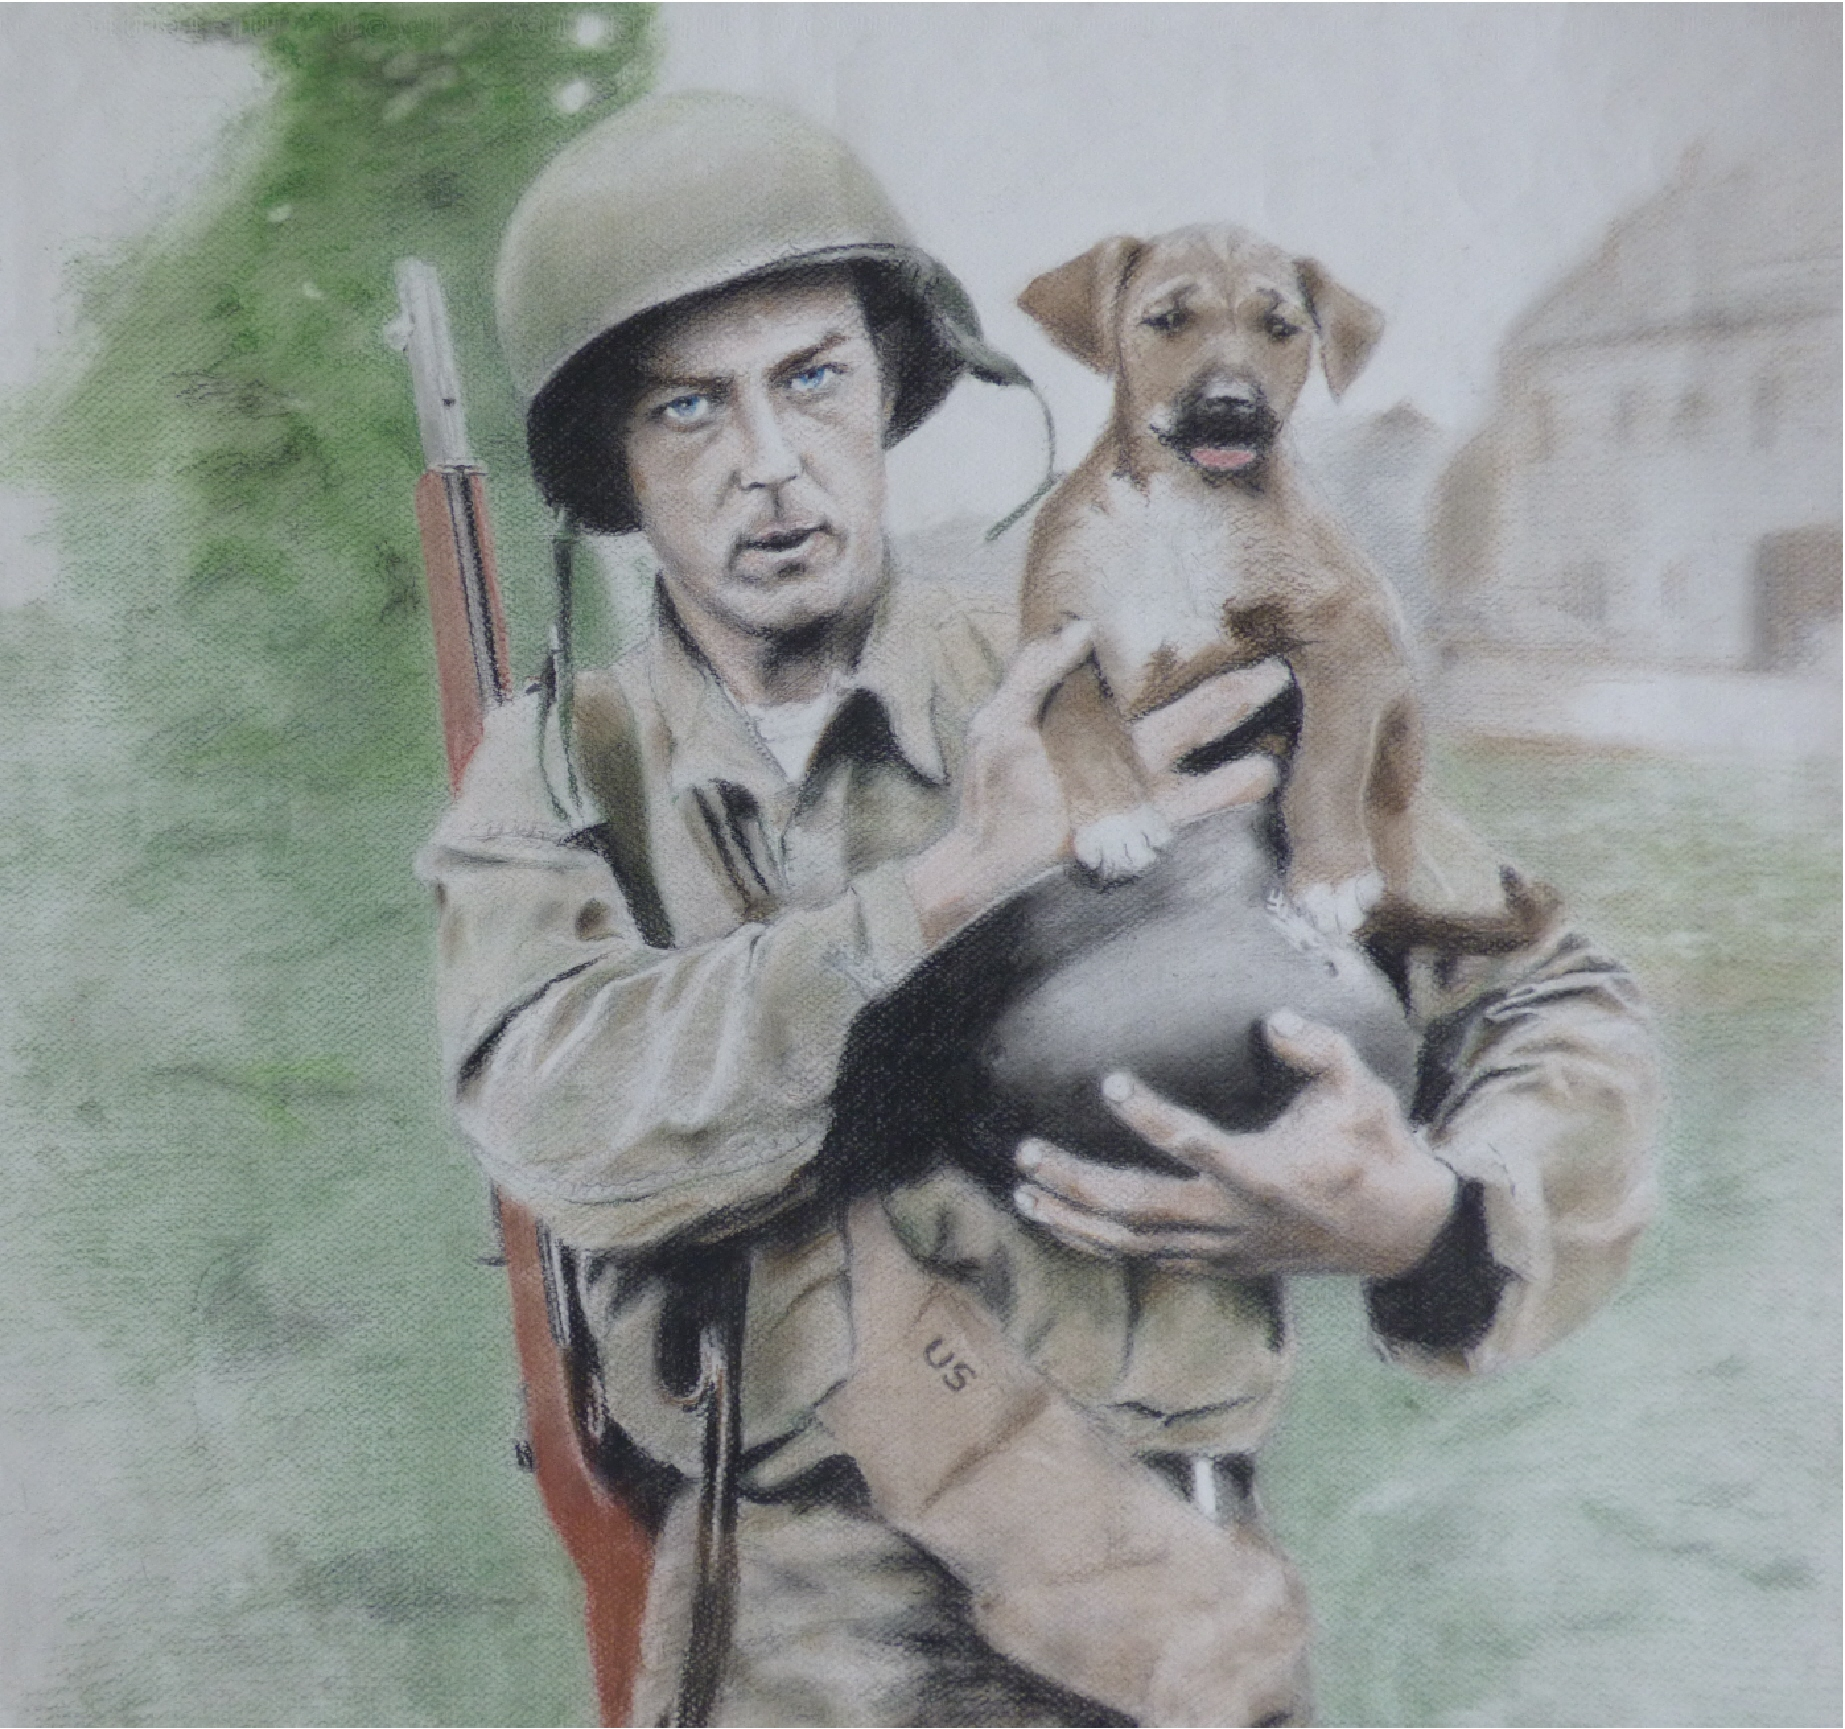 """Soldier with a Puppy"" by Dominic Lynn"